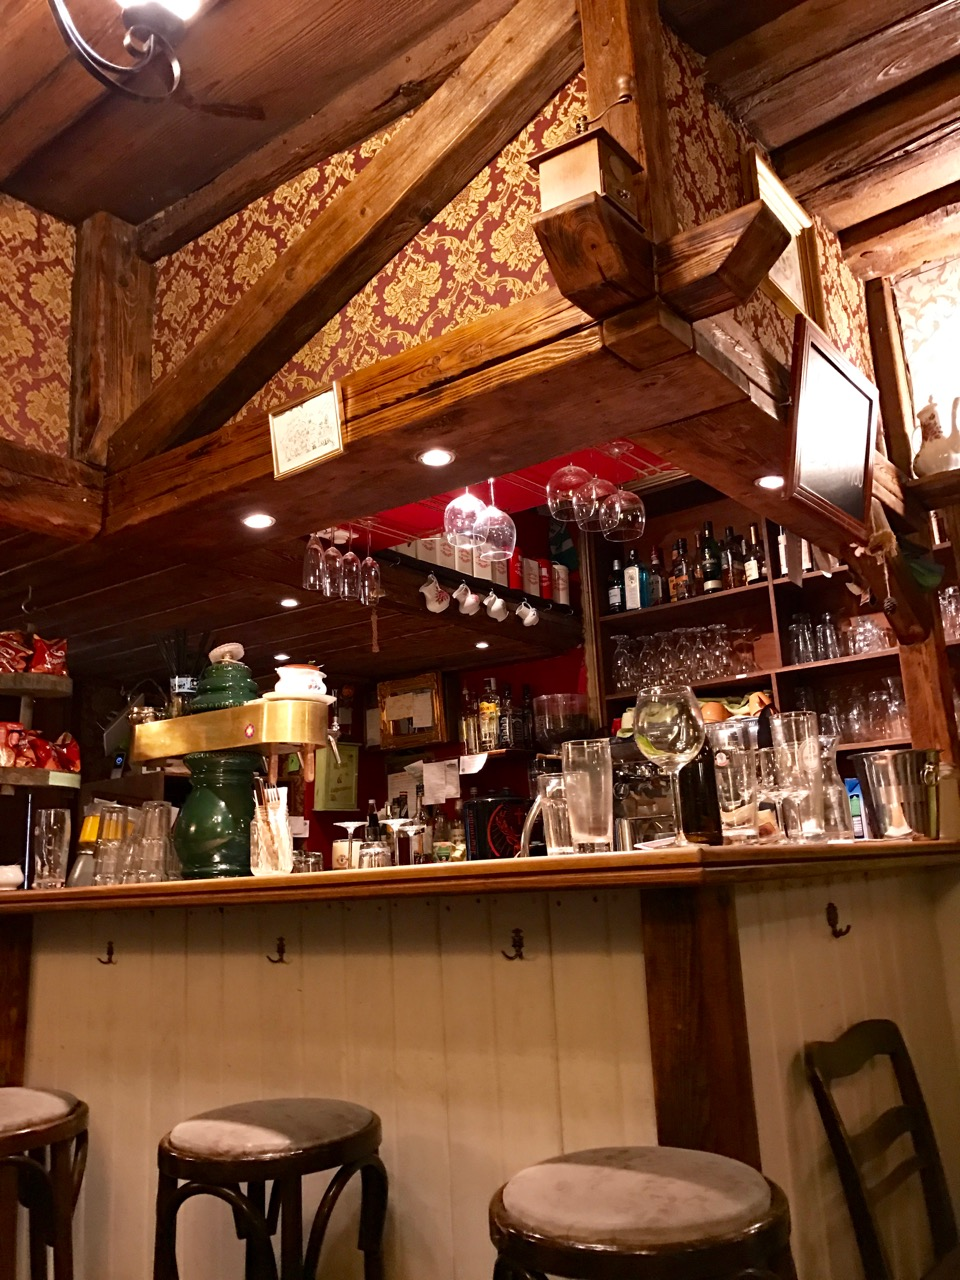 A charming bar in Furth, Germany.